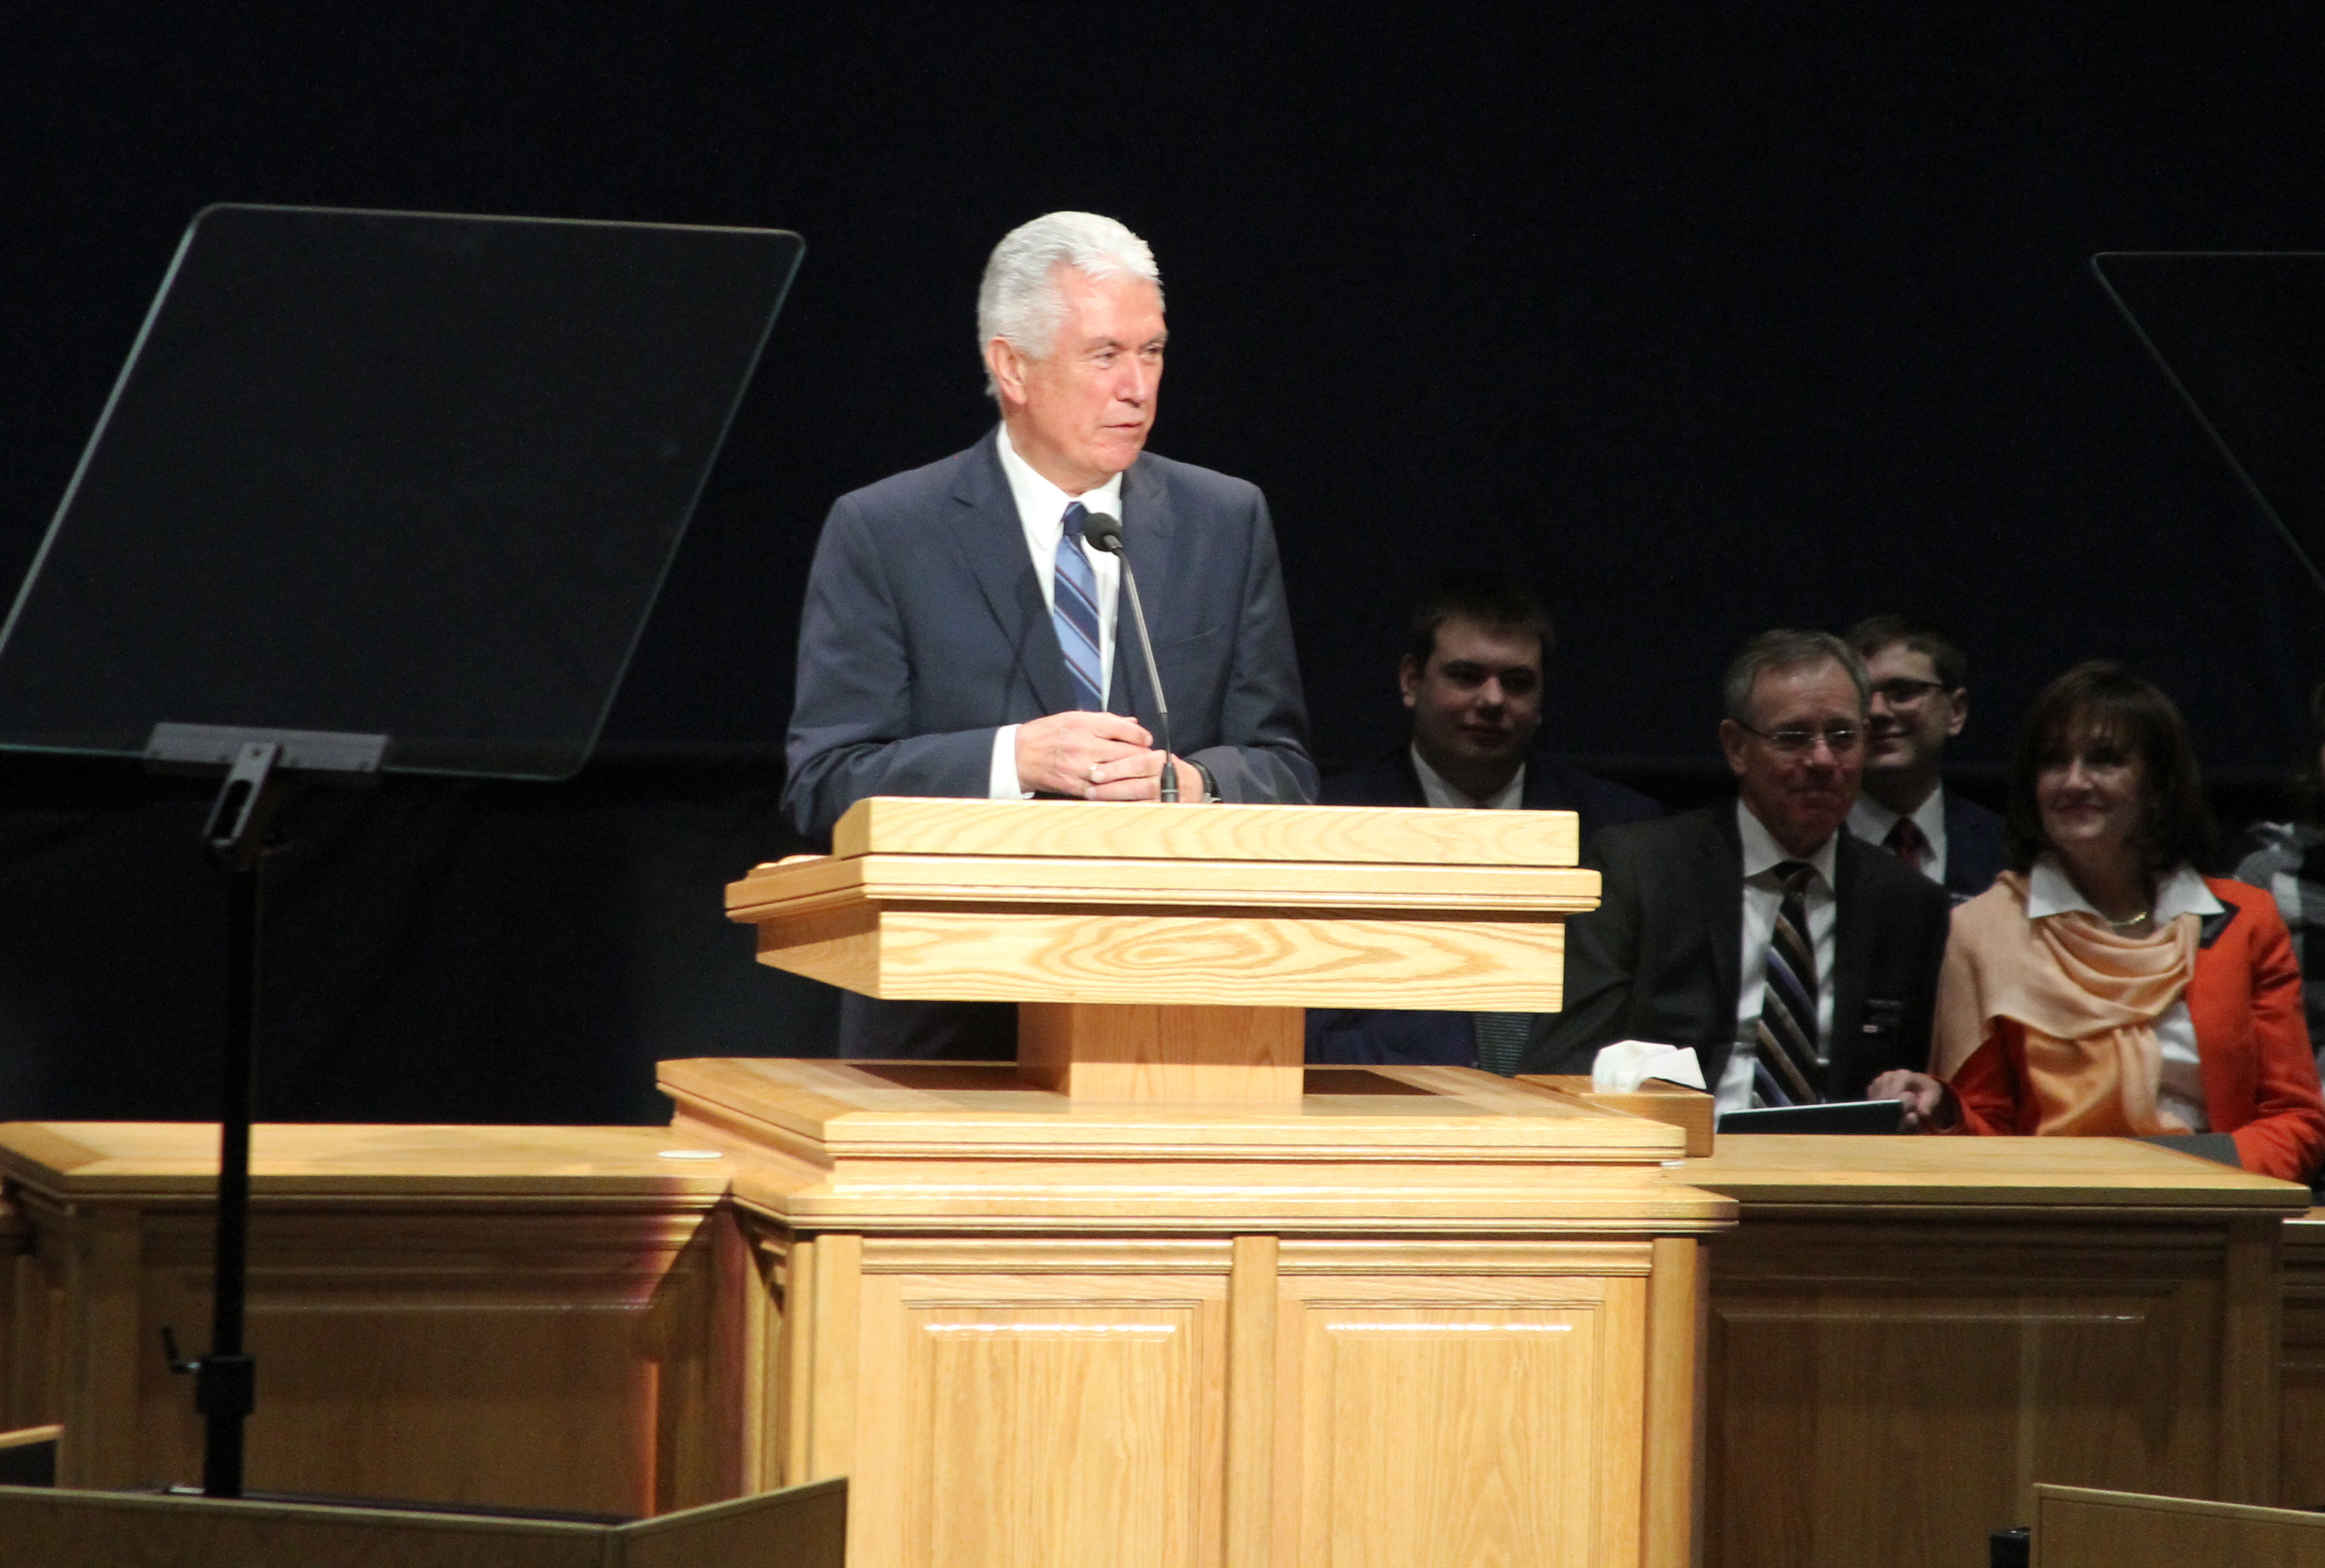 Elder Dieter F. Uchtdorf of the Quorum of the Twelve Apostles speaks to missionaries during a Thanksgiving morning devotional in the Provo MTC on Nov. 22, 2018.